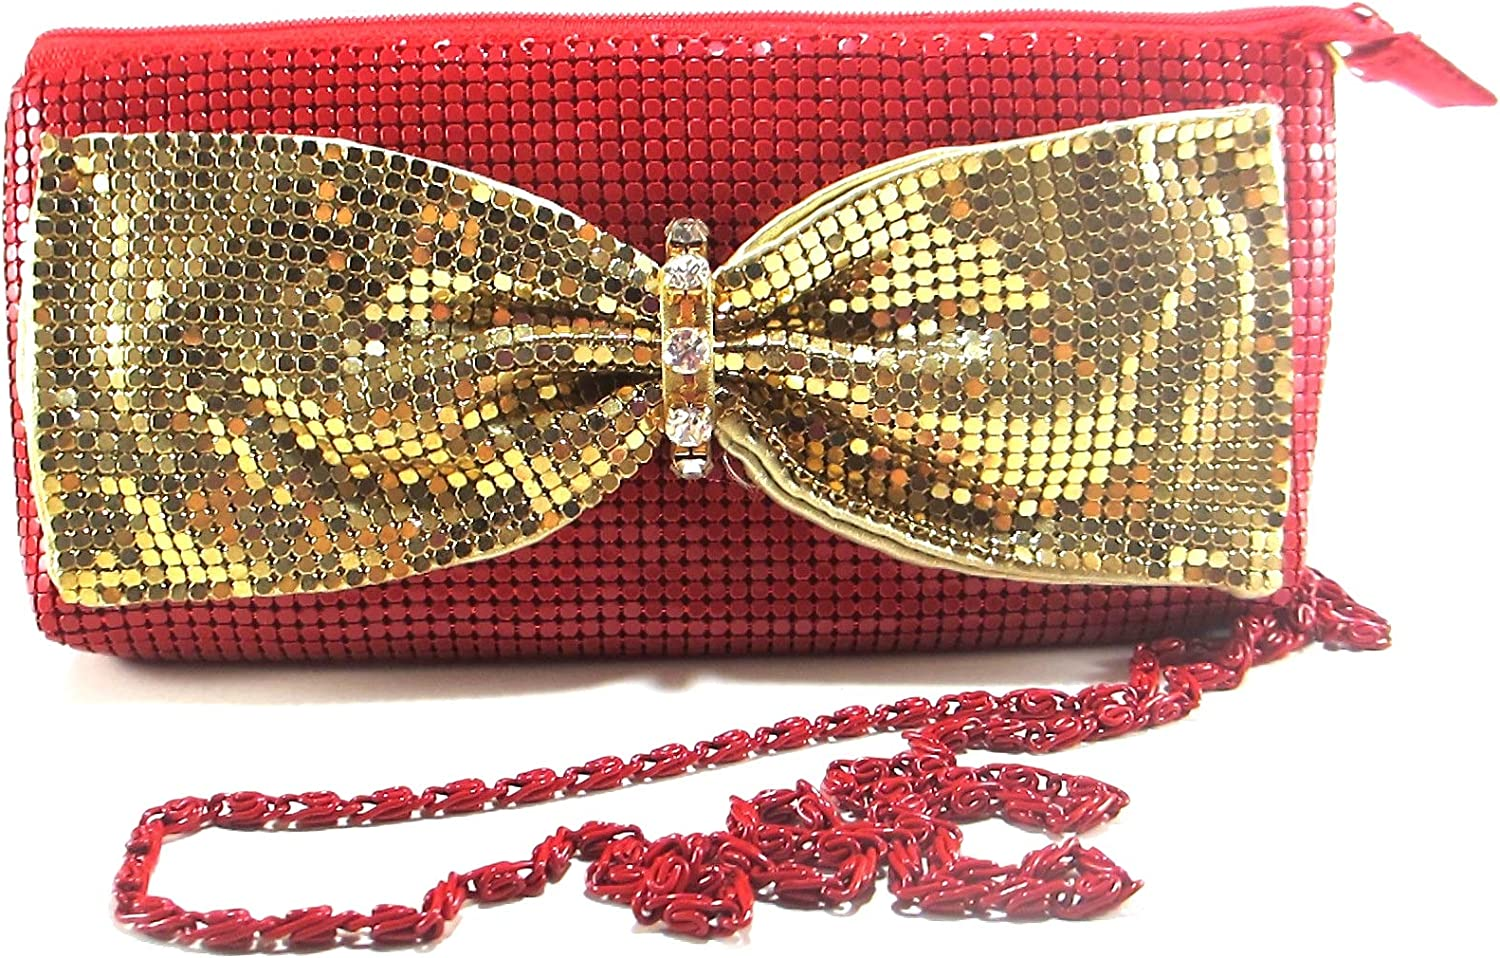 Womens Bowknot clutch metal mesh evening purse for Cocktail Party Prom Wedding Banquet